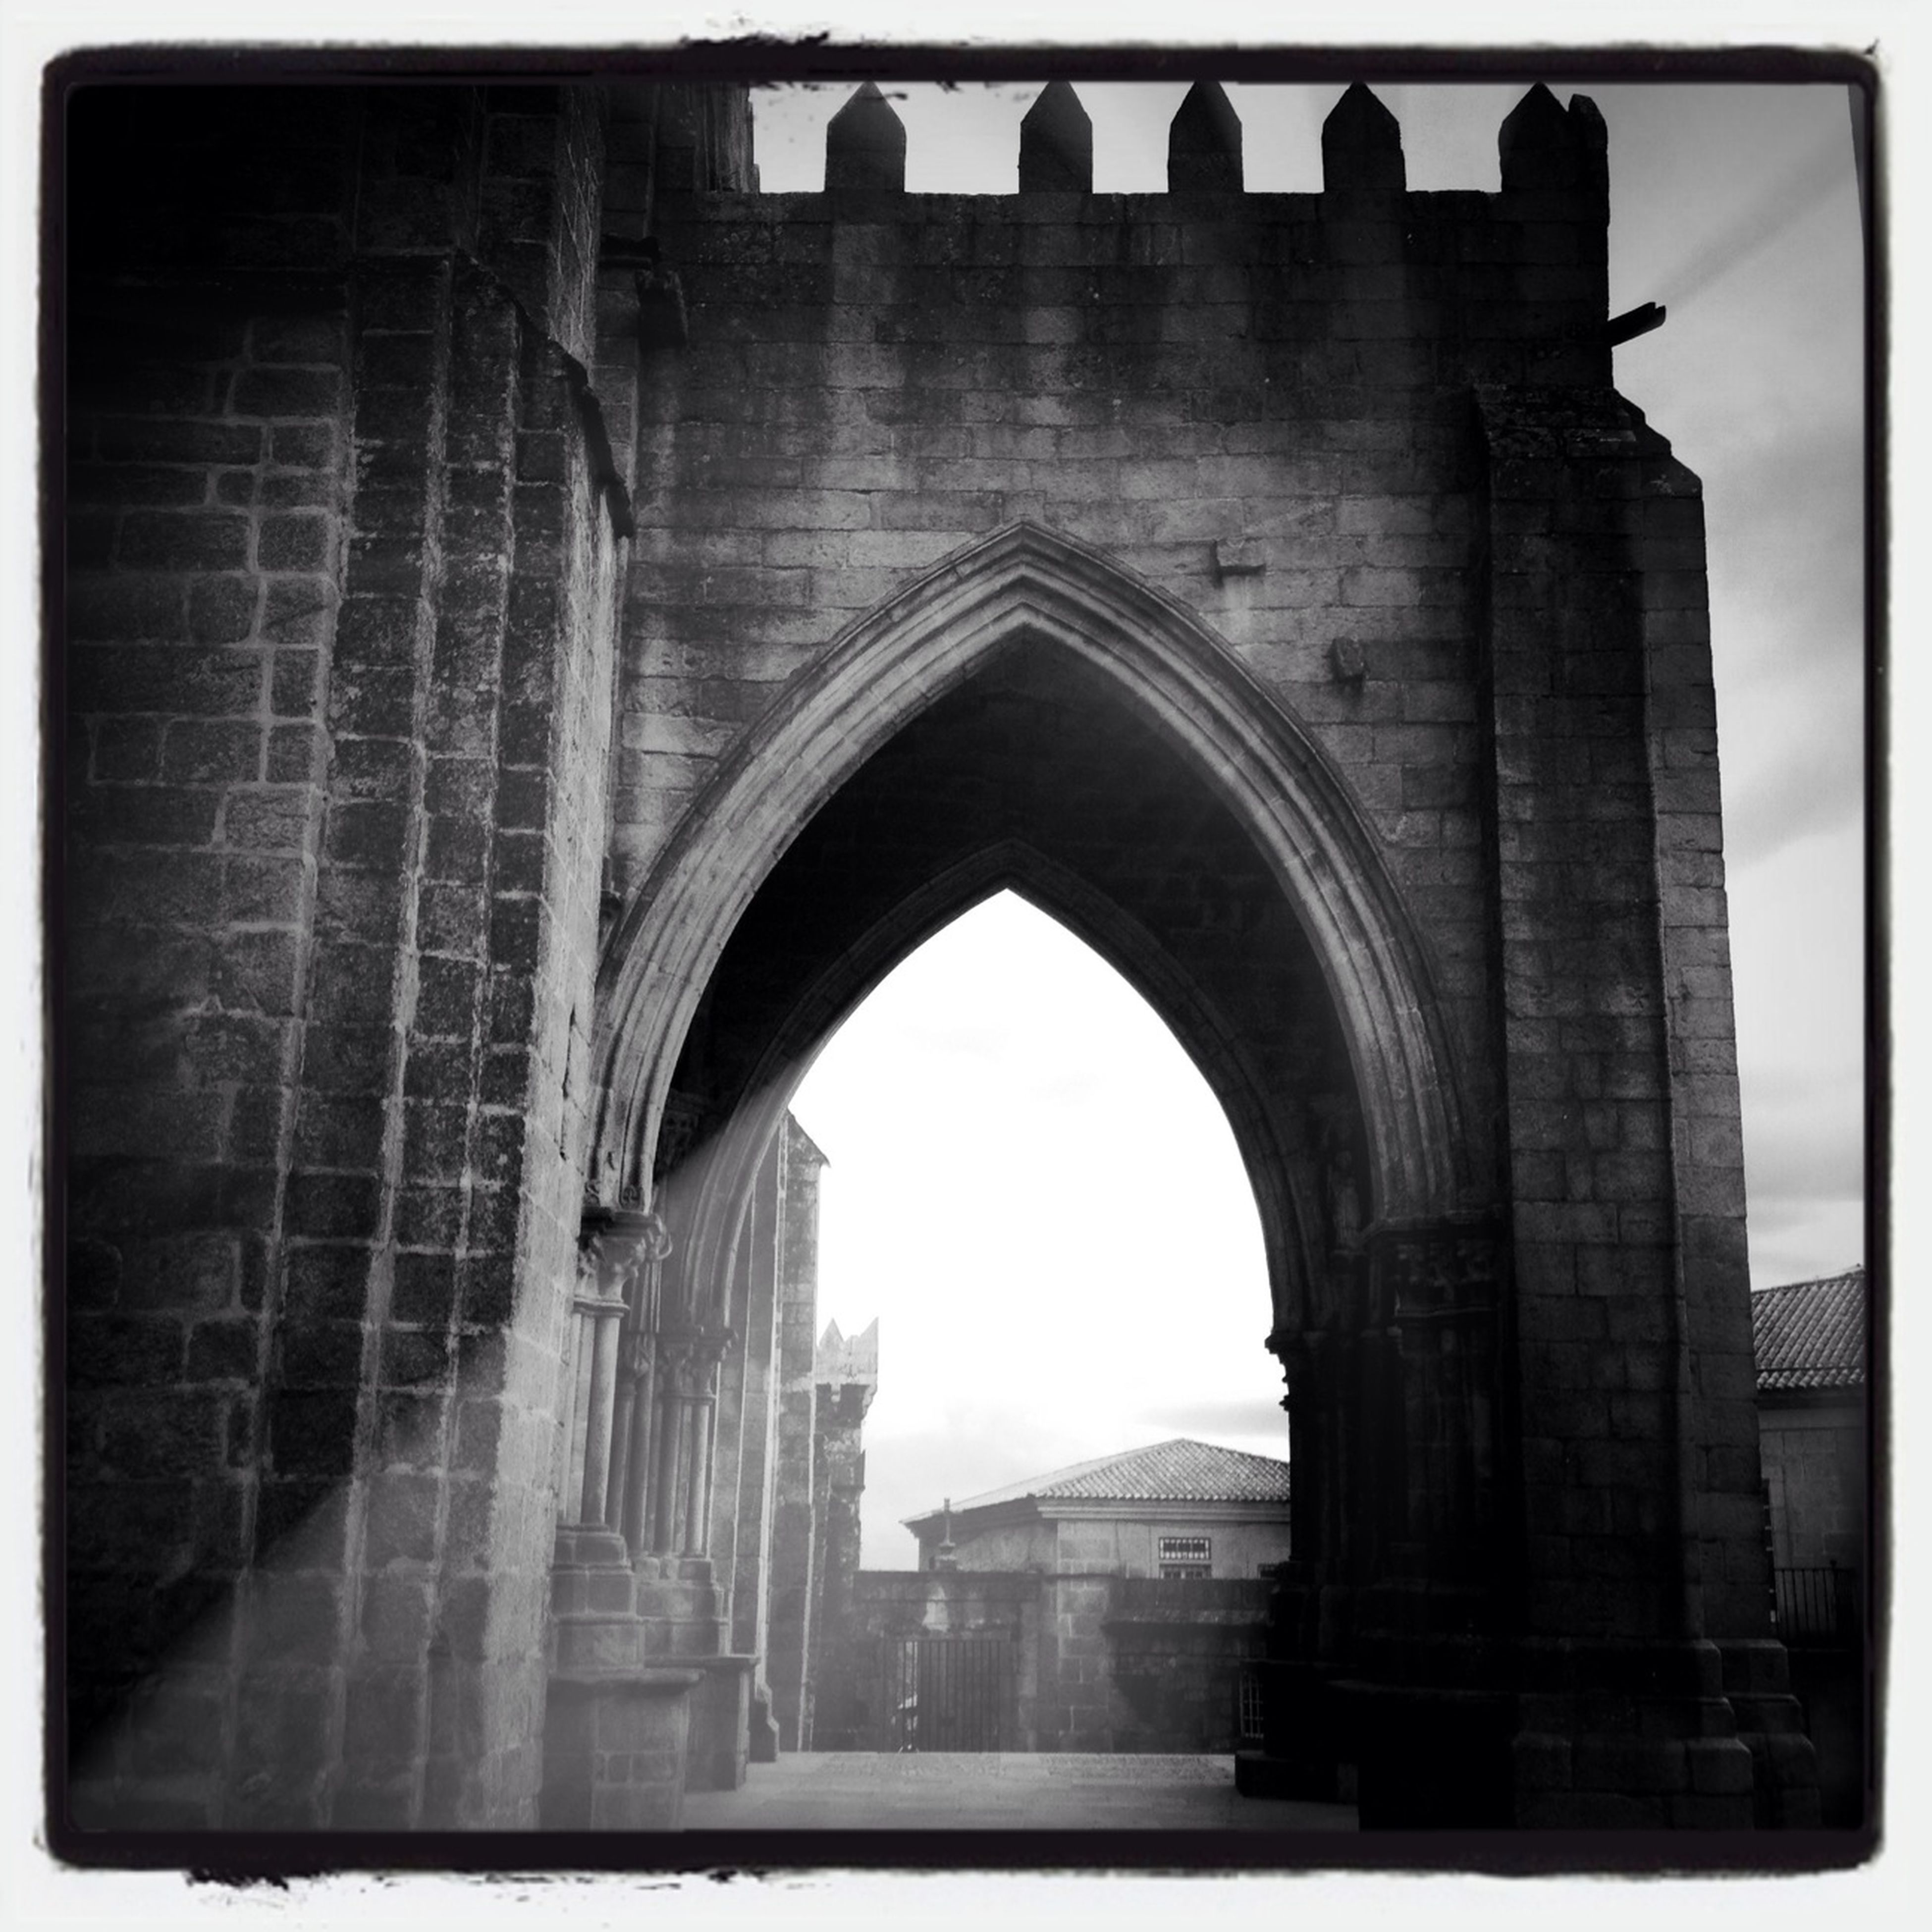 architecture, built structure, arch, transfer print, building exterior, history, auto post production filter, archway, old, indoors, arched, travel destinations, the past, old ruin, day, building, the way forward, historic, ancient, low angle view